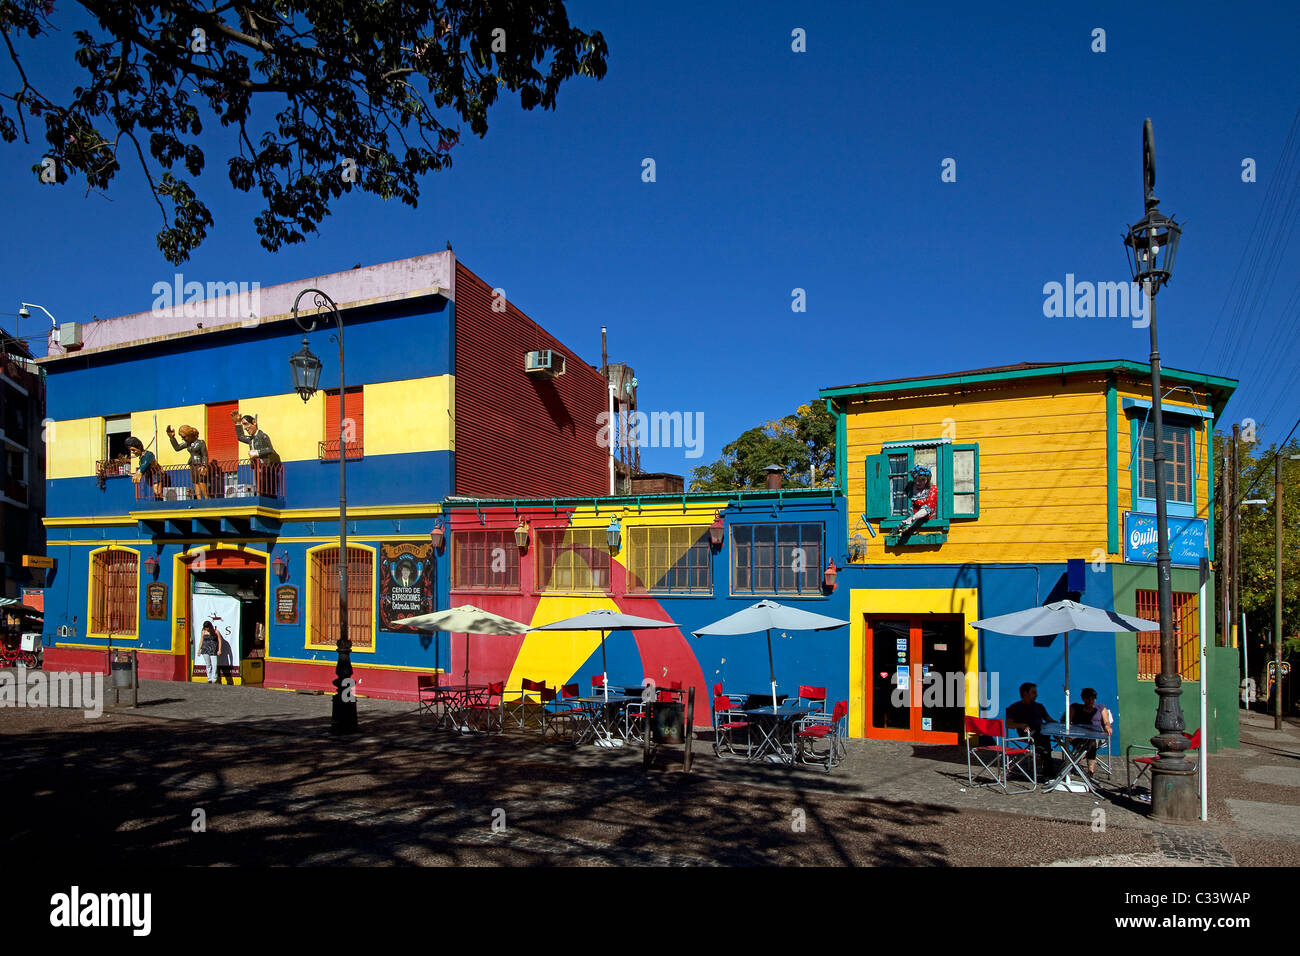 Photography of Caminito Street-Museum, Buenos Aires, Argentina. Stock Photo